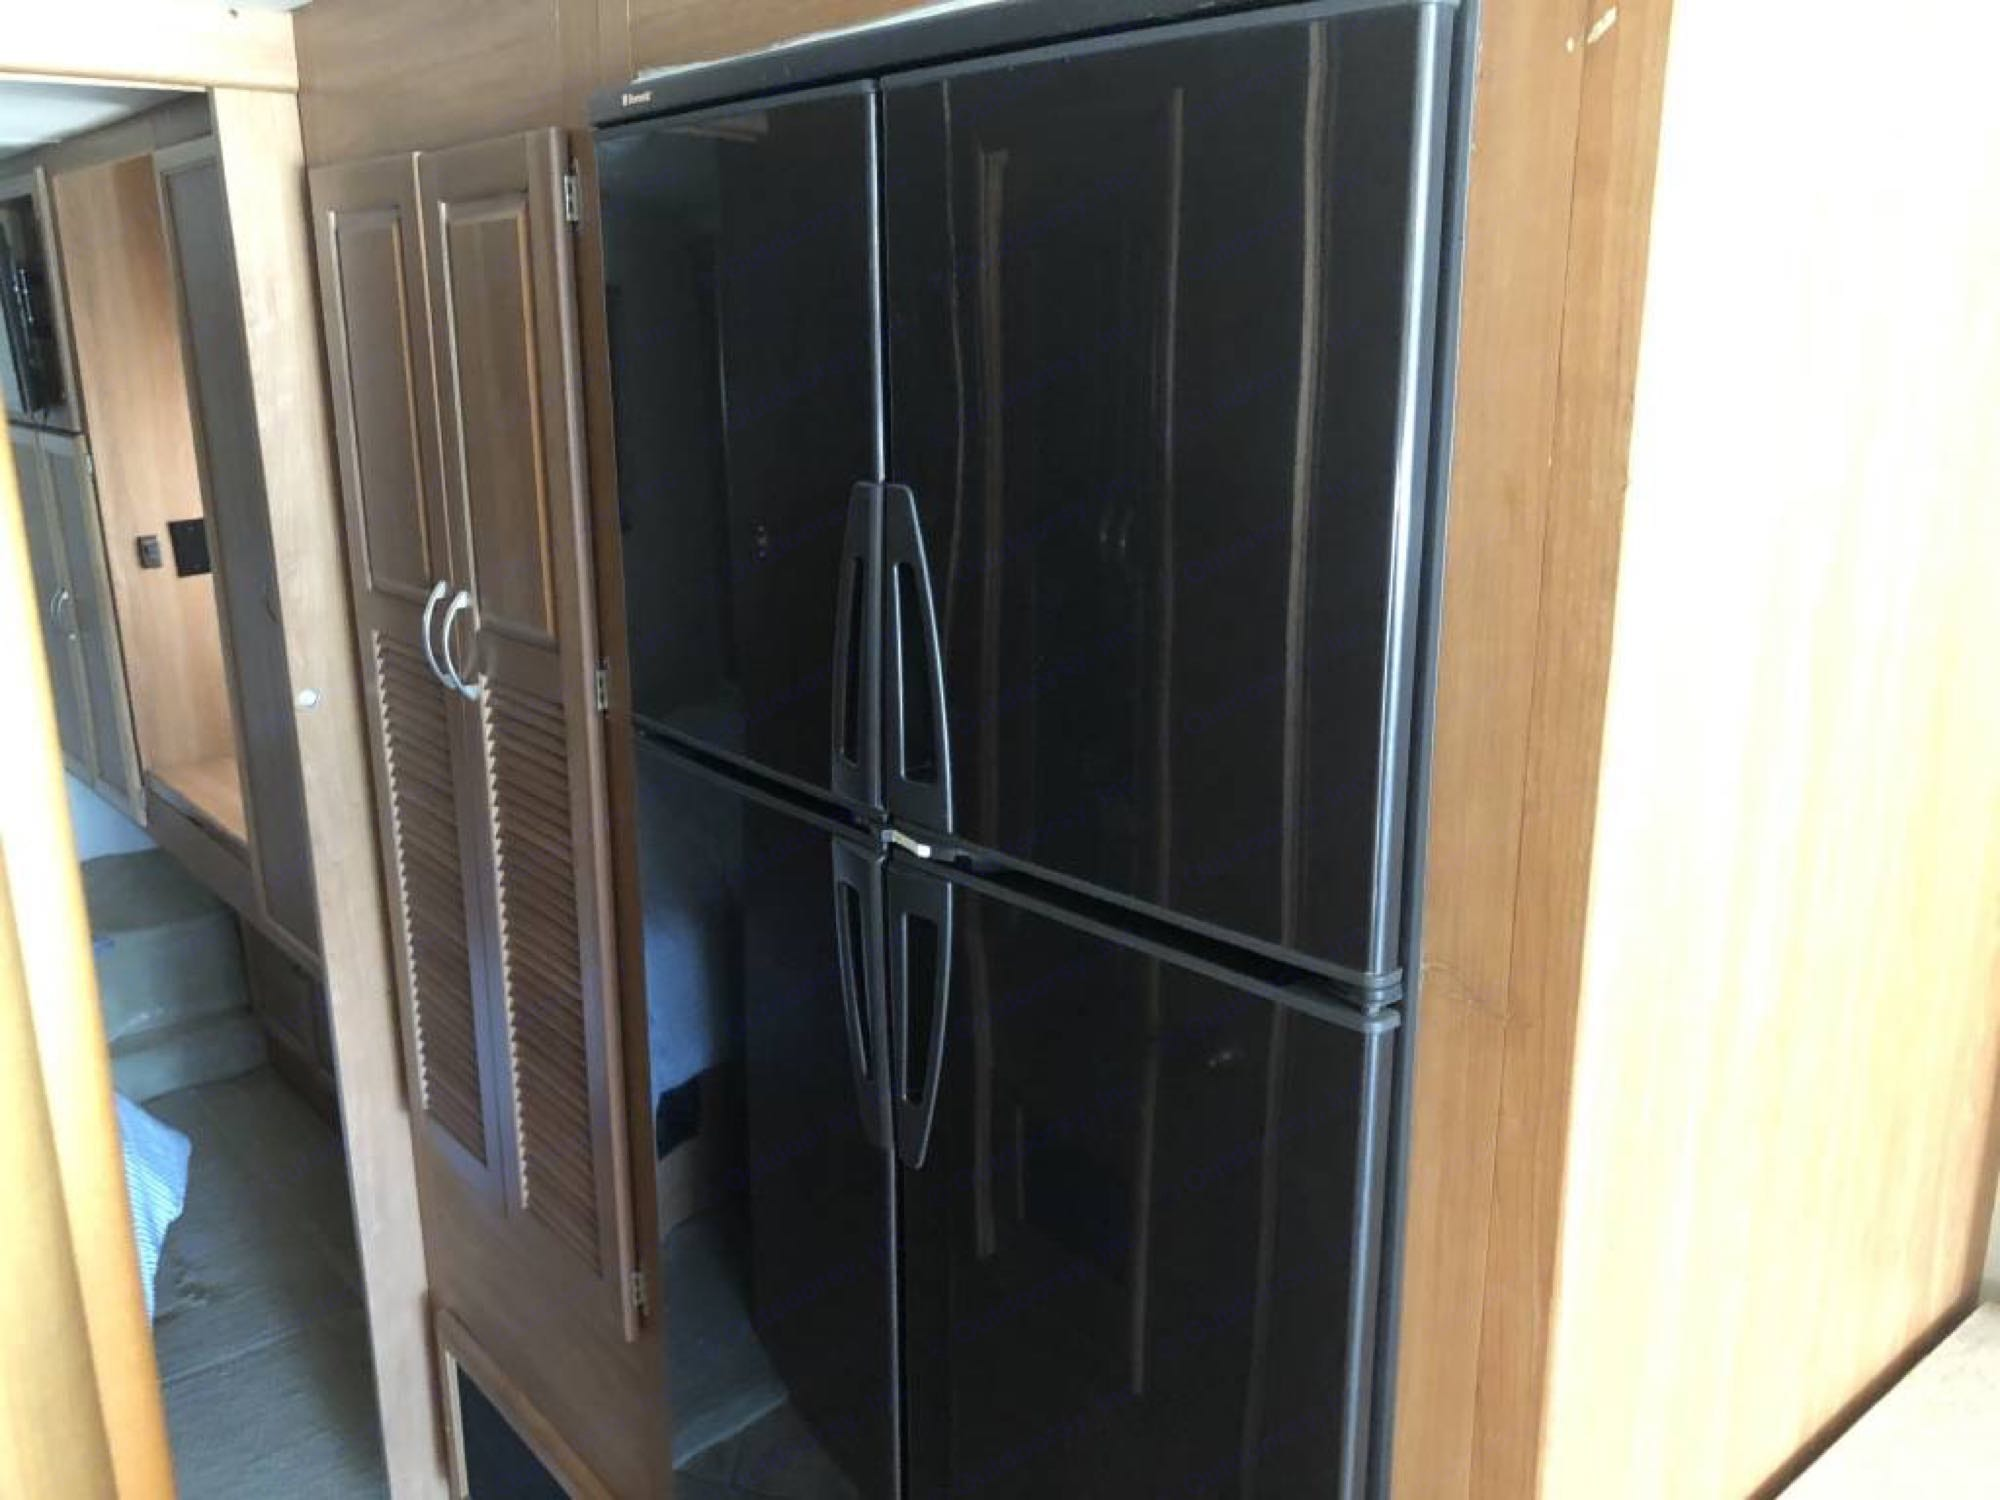 French door style Refrigerator/freezer w/ ice maker. National Tropical 2008